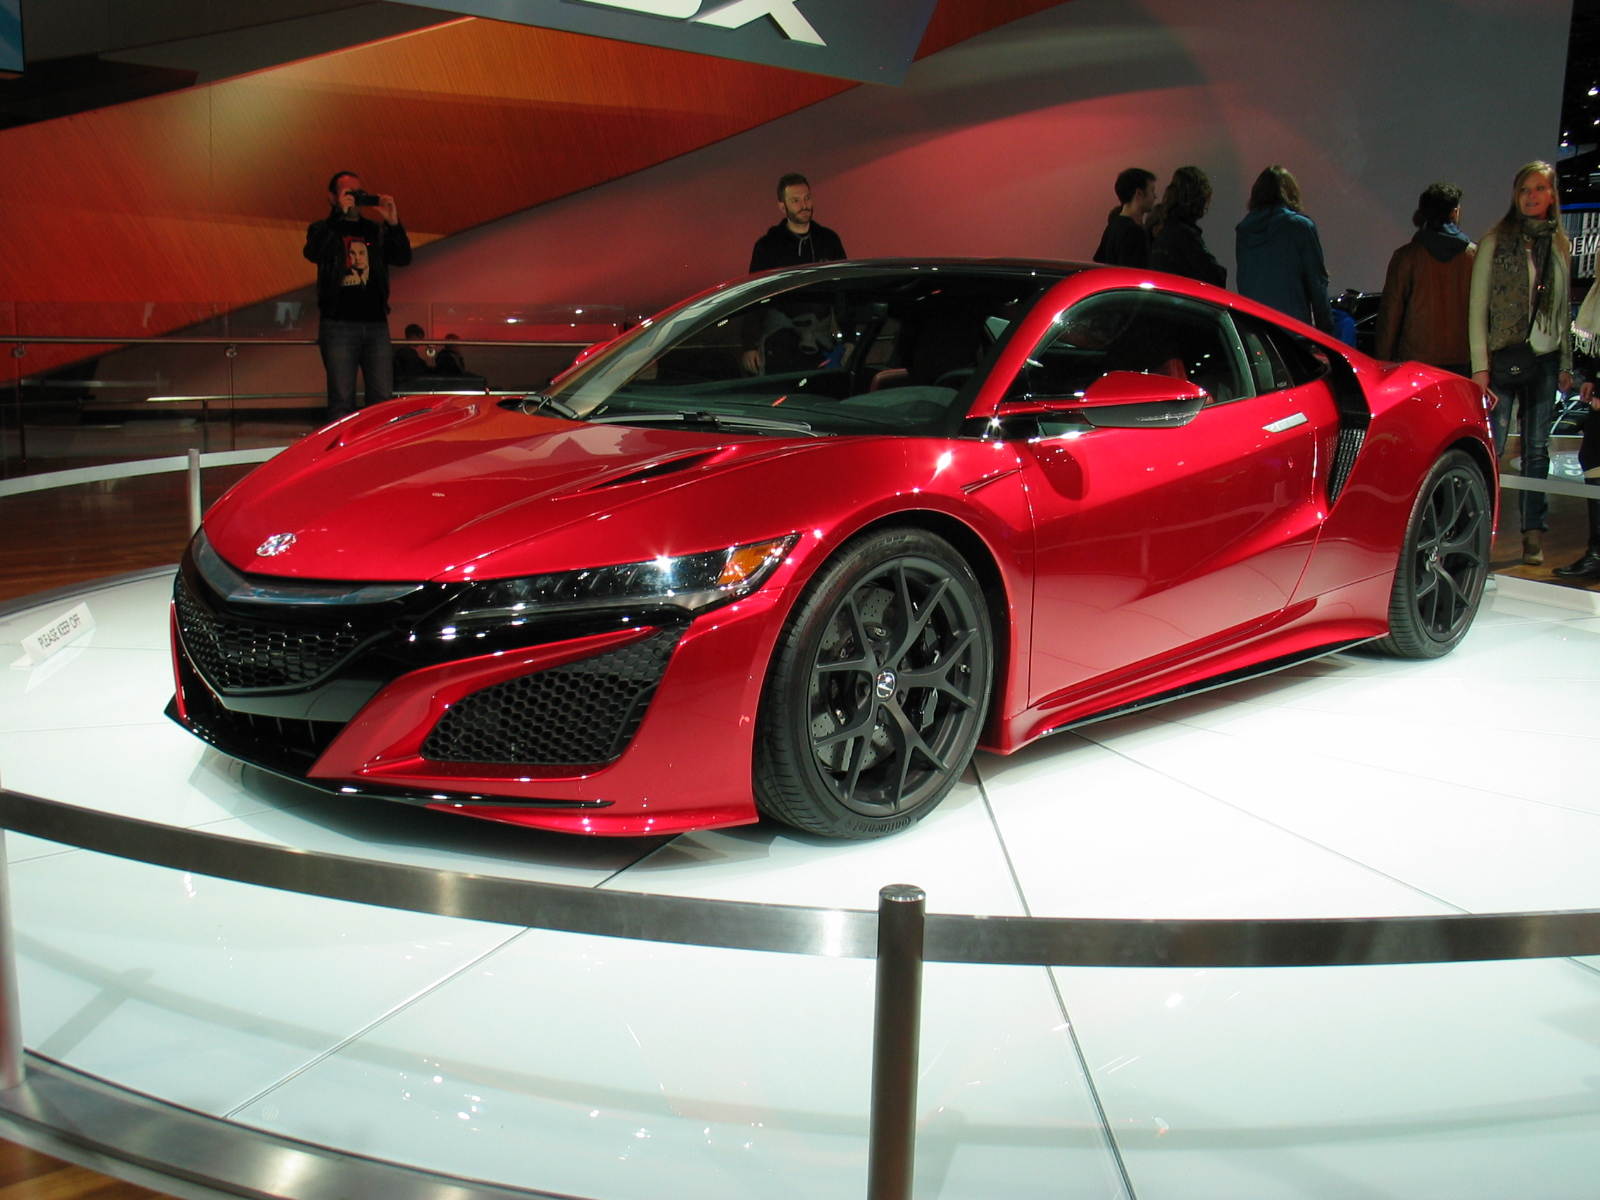 File:Detroit NAIAS 2015 2016 Acura NSX.JPG - Wikimedia Commons